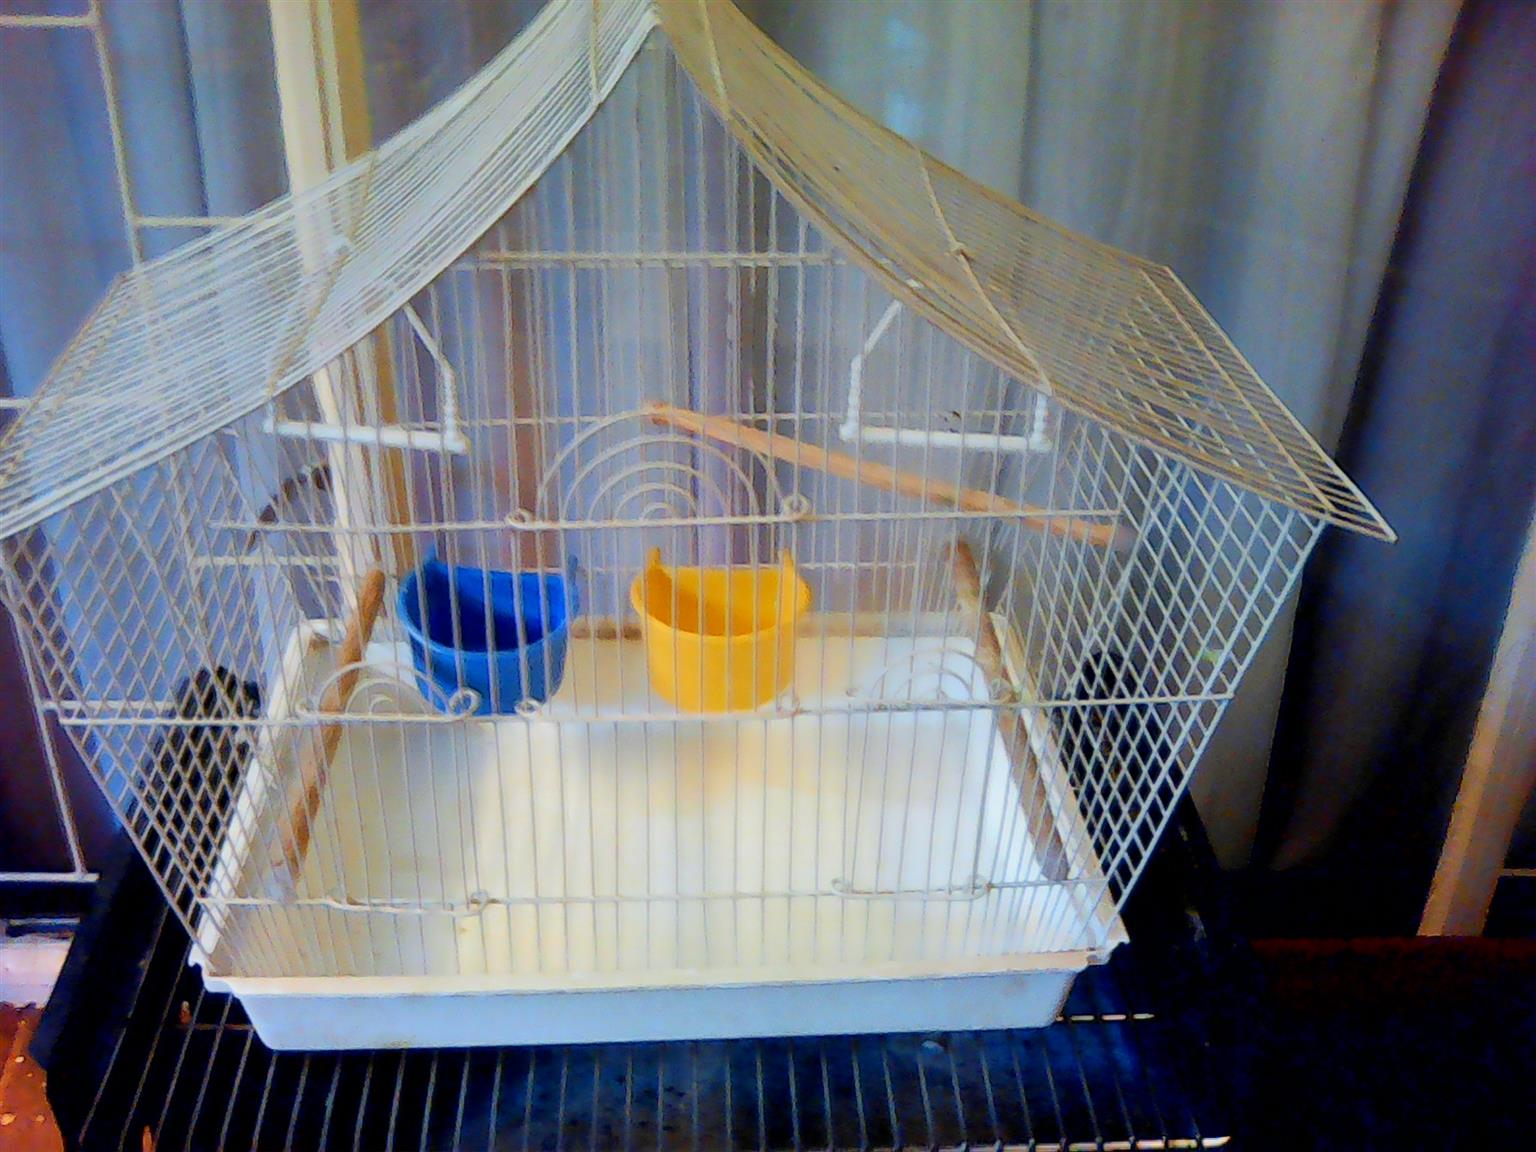 2 x bird cages for sale - urgent